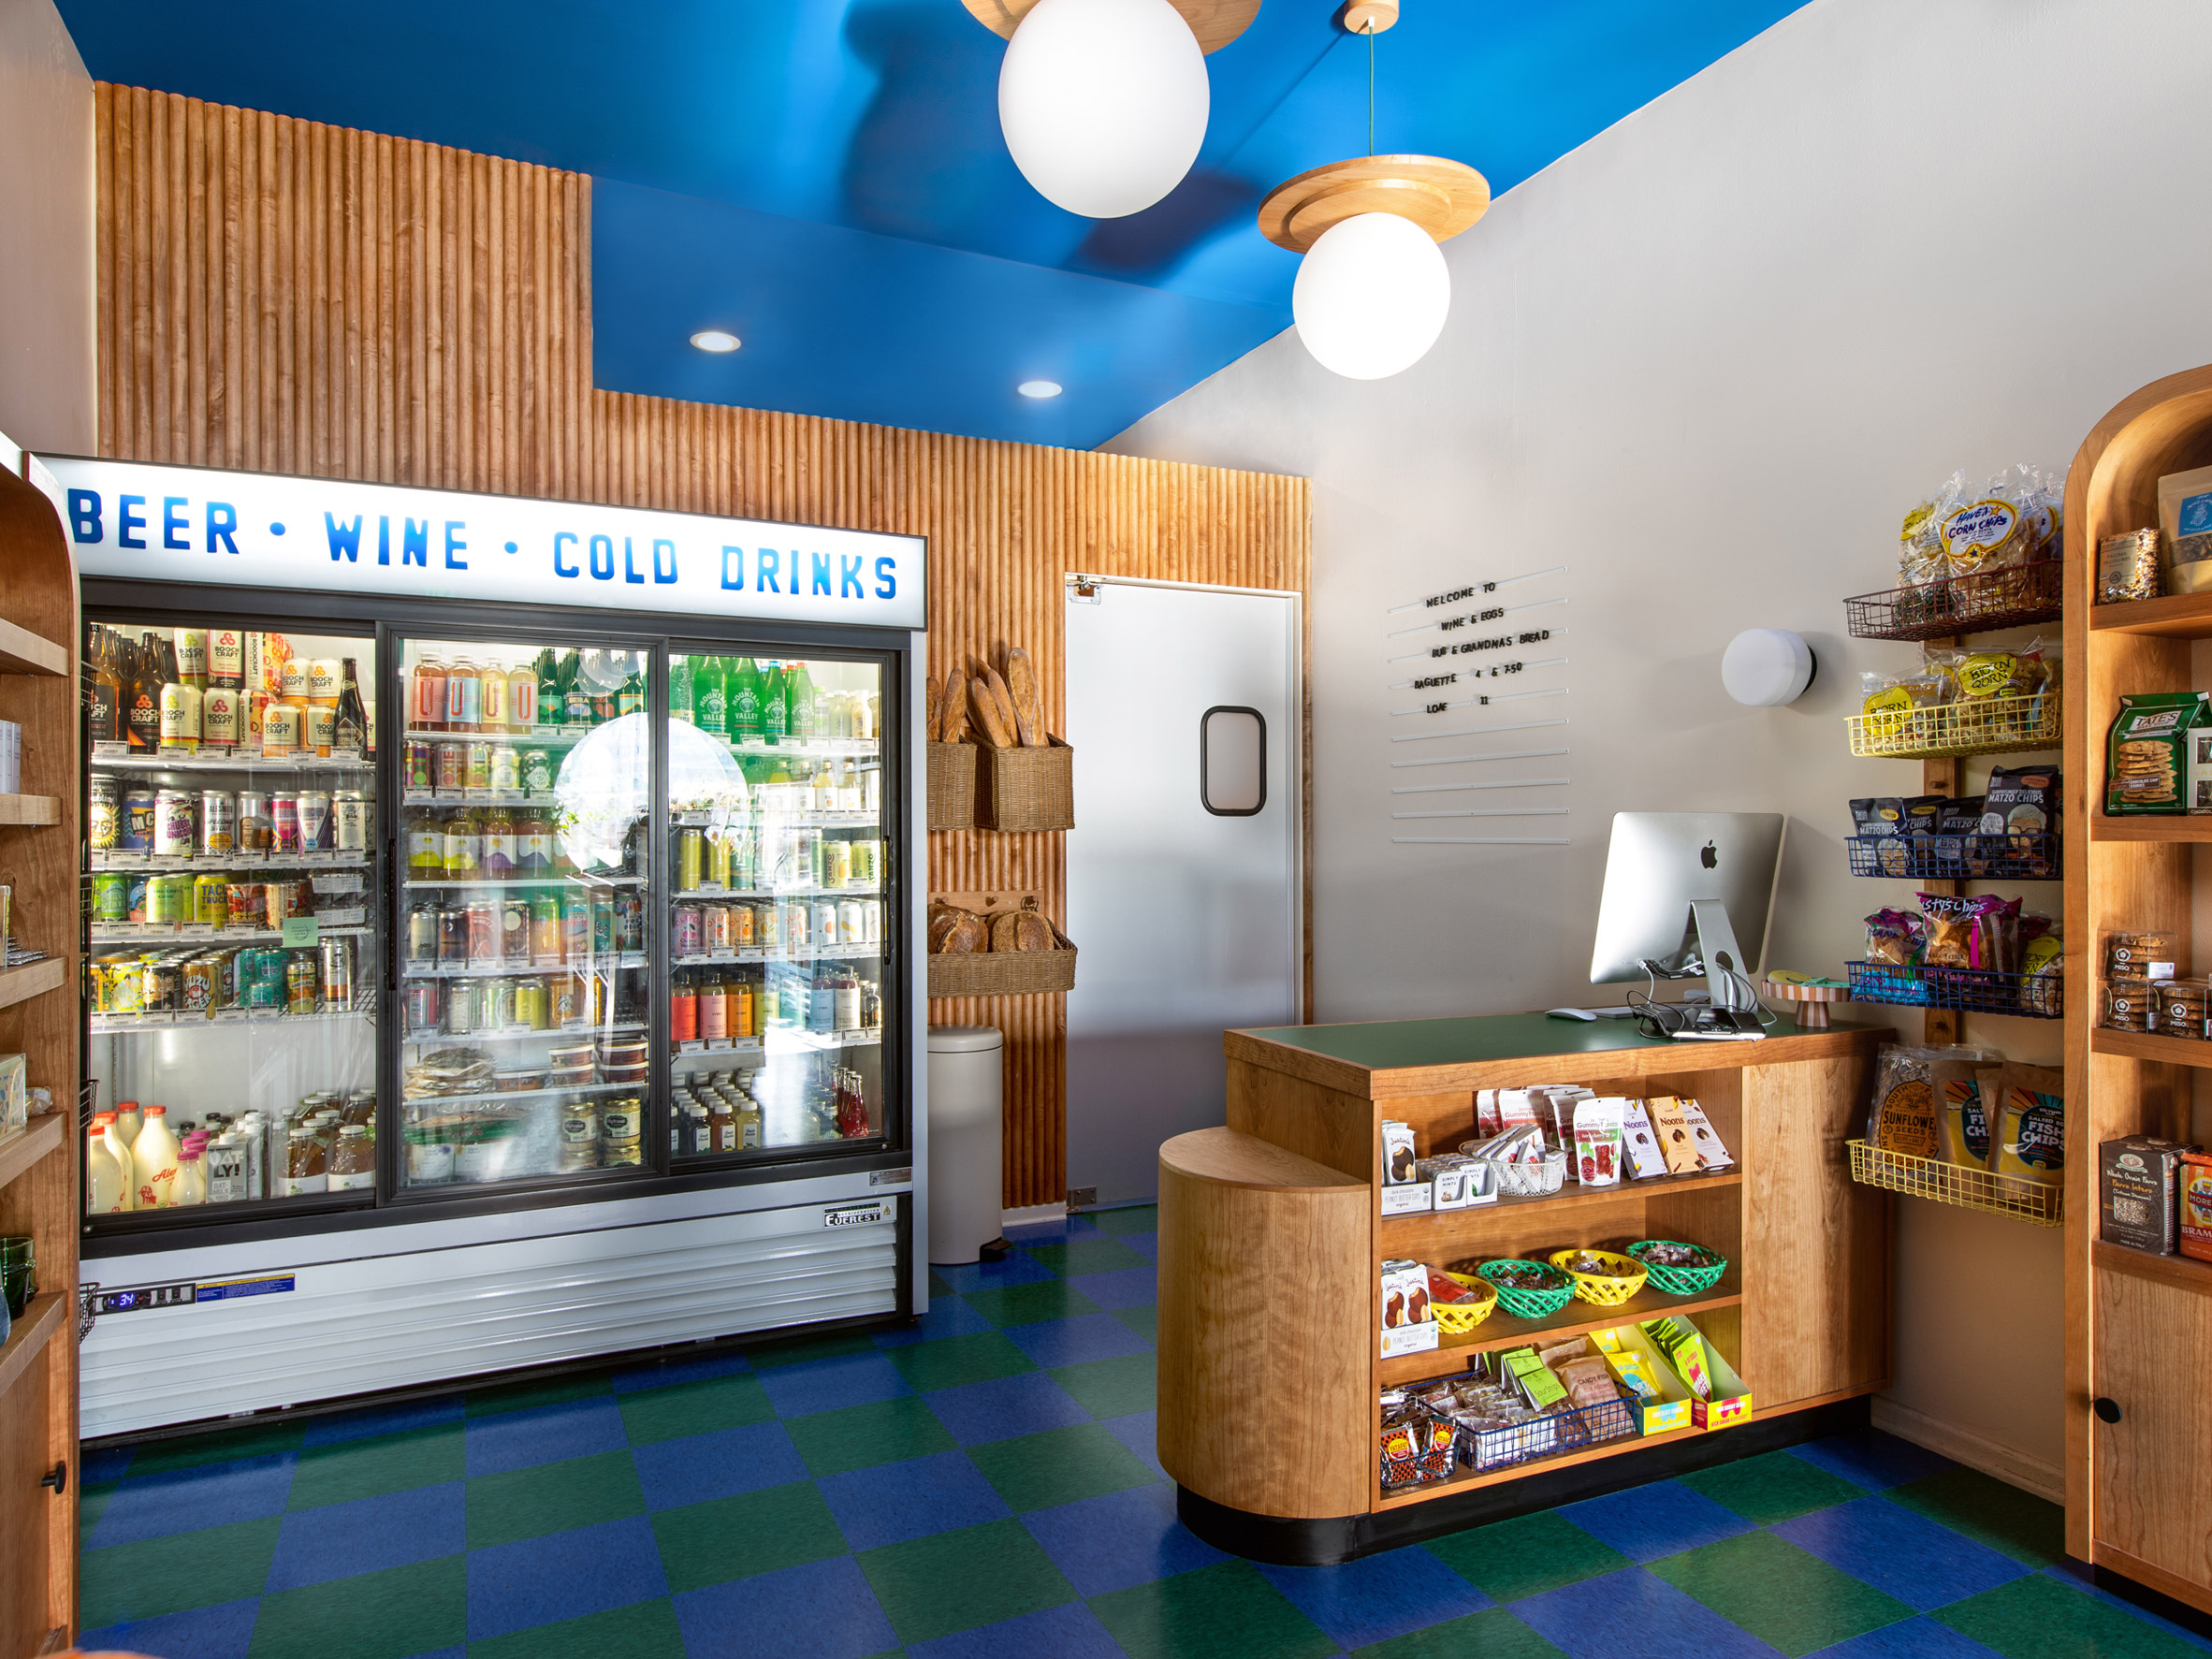 Wine and grocery store with blue and green floor